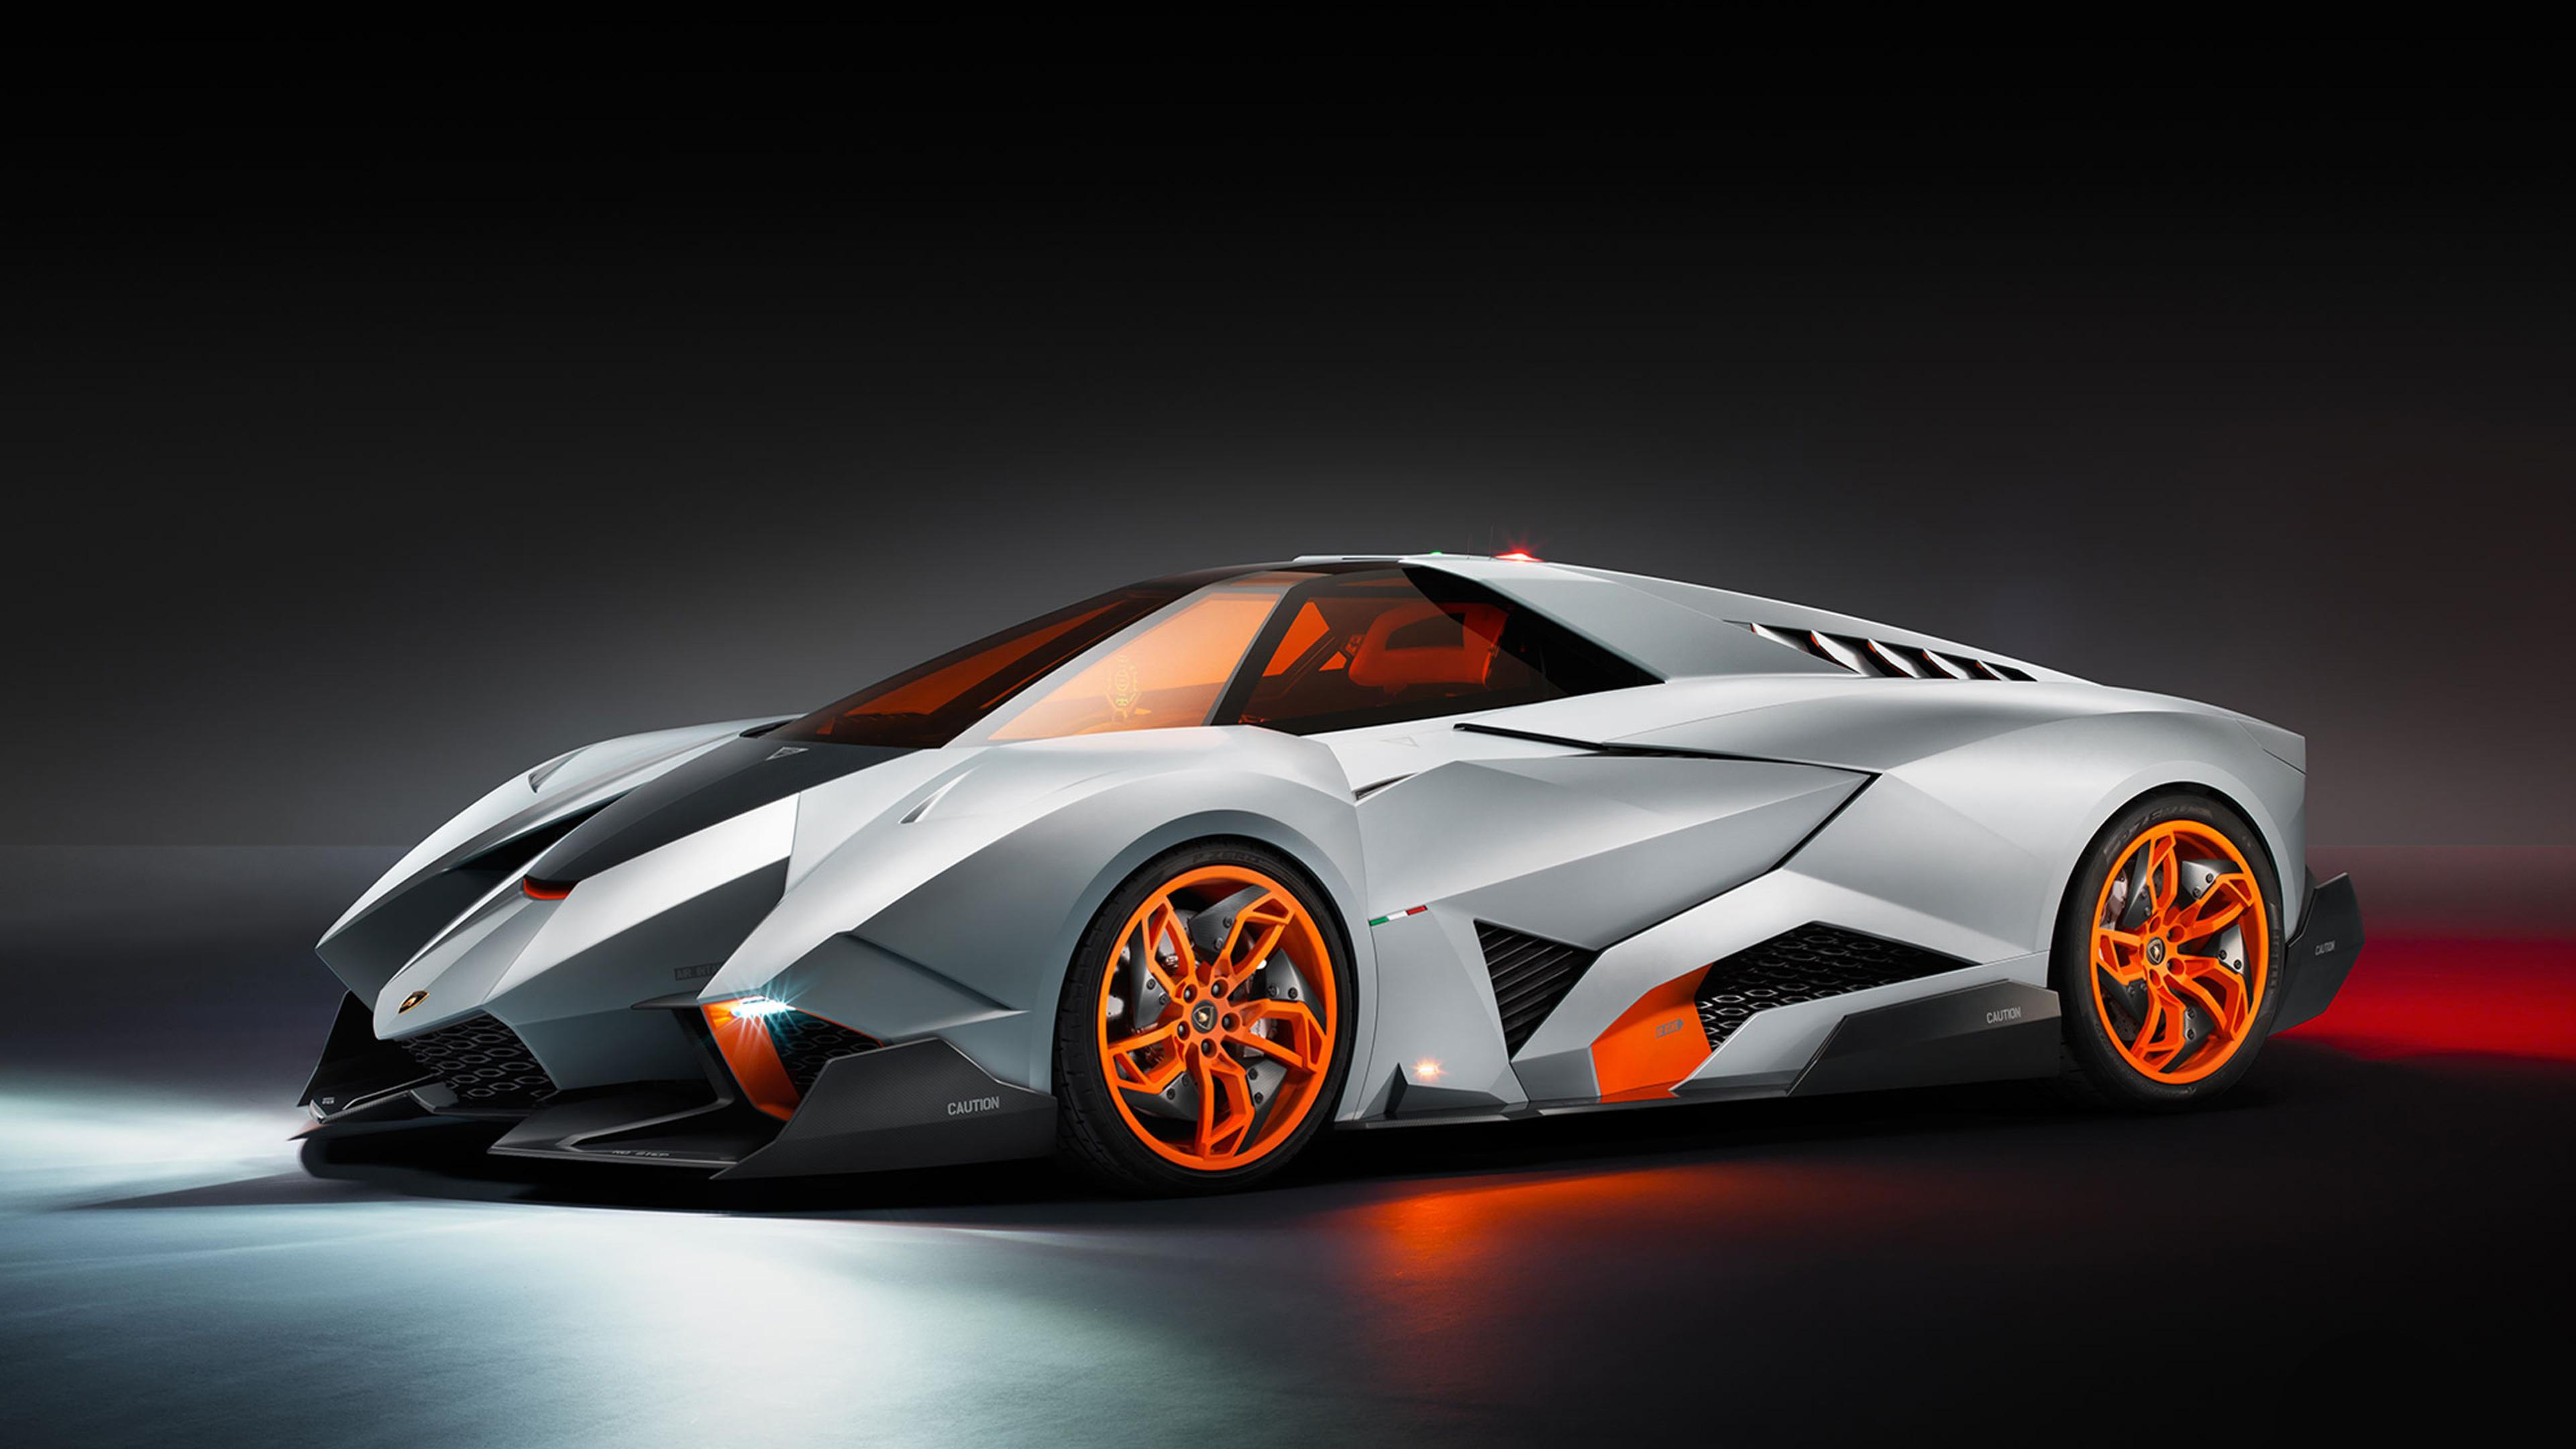 Bon Lamborghini Egoista   Gray And Orange Sport Car Wallpaper Download 3840x2160